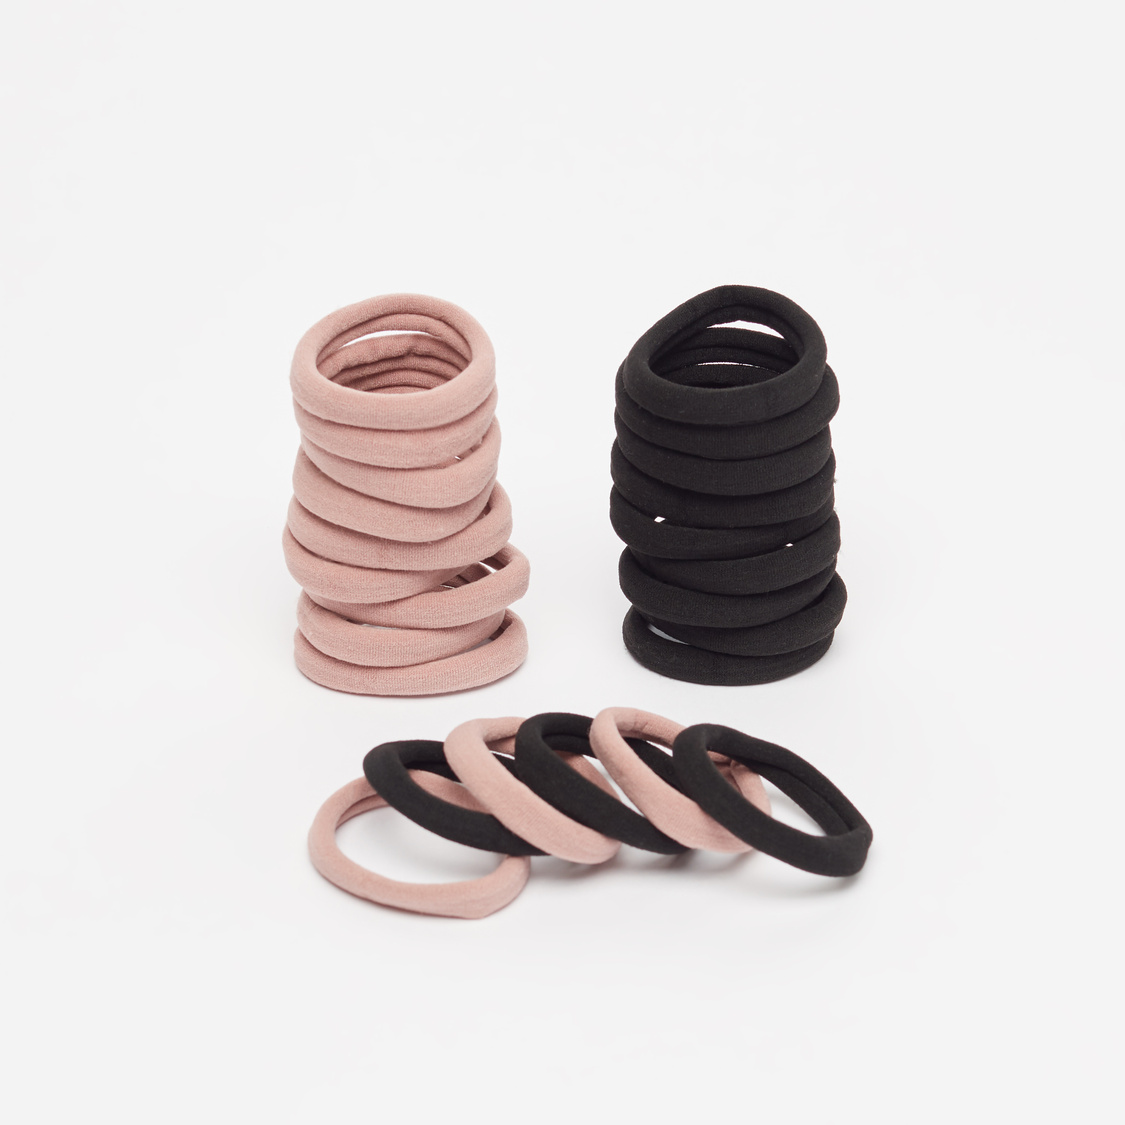 Pack of 24 - Elastic Round Bands